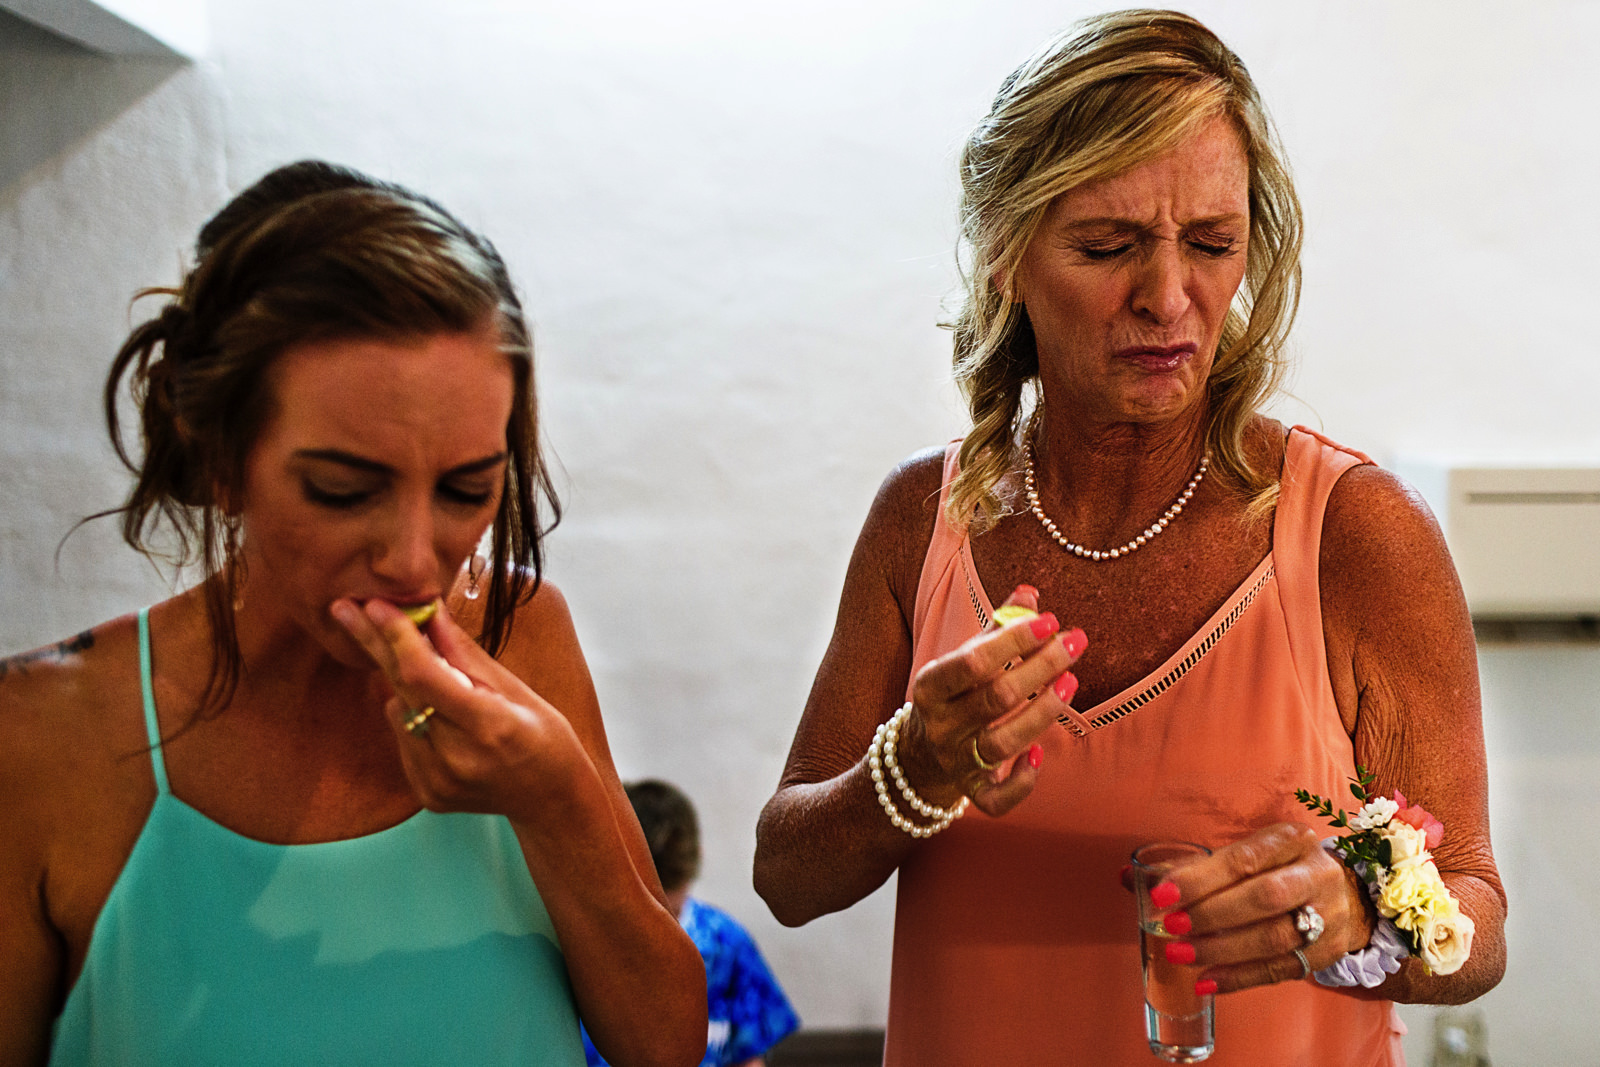 Sister and mother of the bride reaction to tequila shot